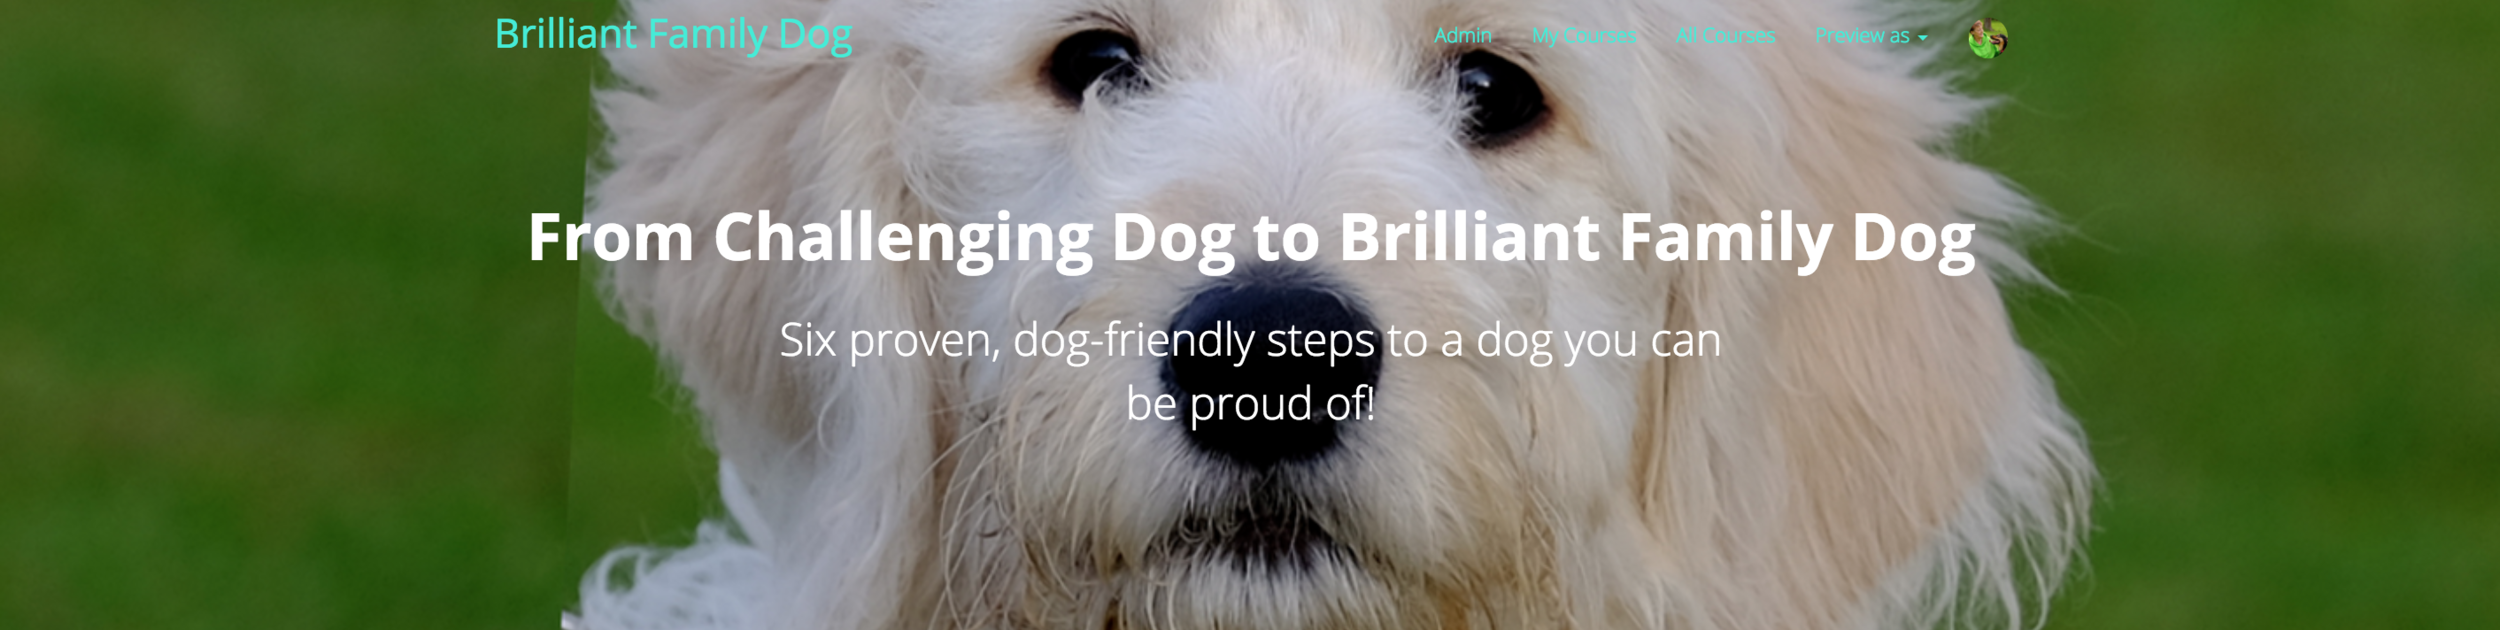 New rescue dog? Your dog getting naughtier?! | Superb online Dog Training Course with daily video lessons! | CLICK FOR DETAILS | #naughtydog, #newrescuedog, #dogtraining | www.brilliantfamilydog.com